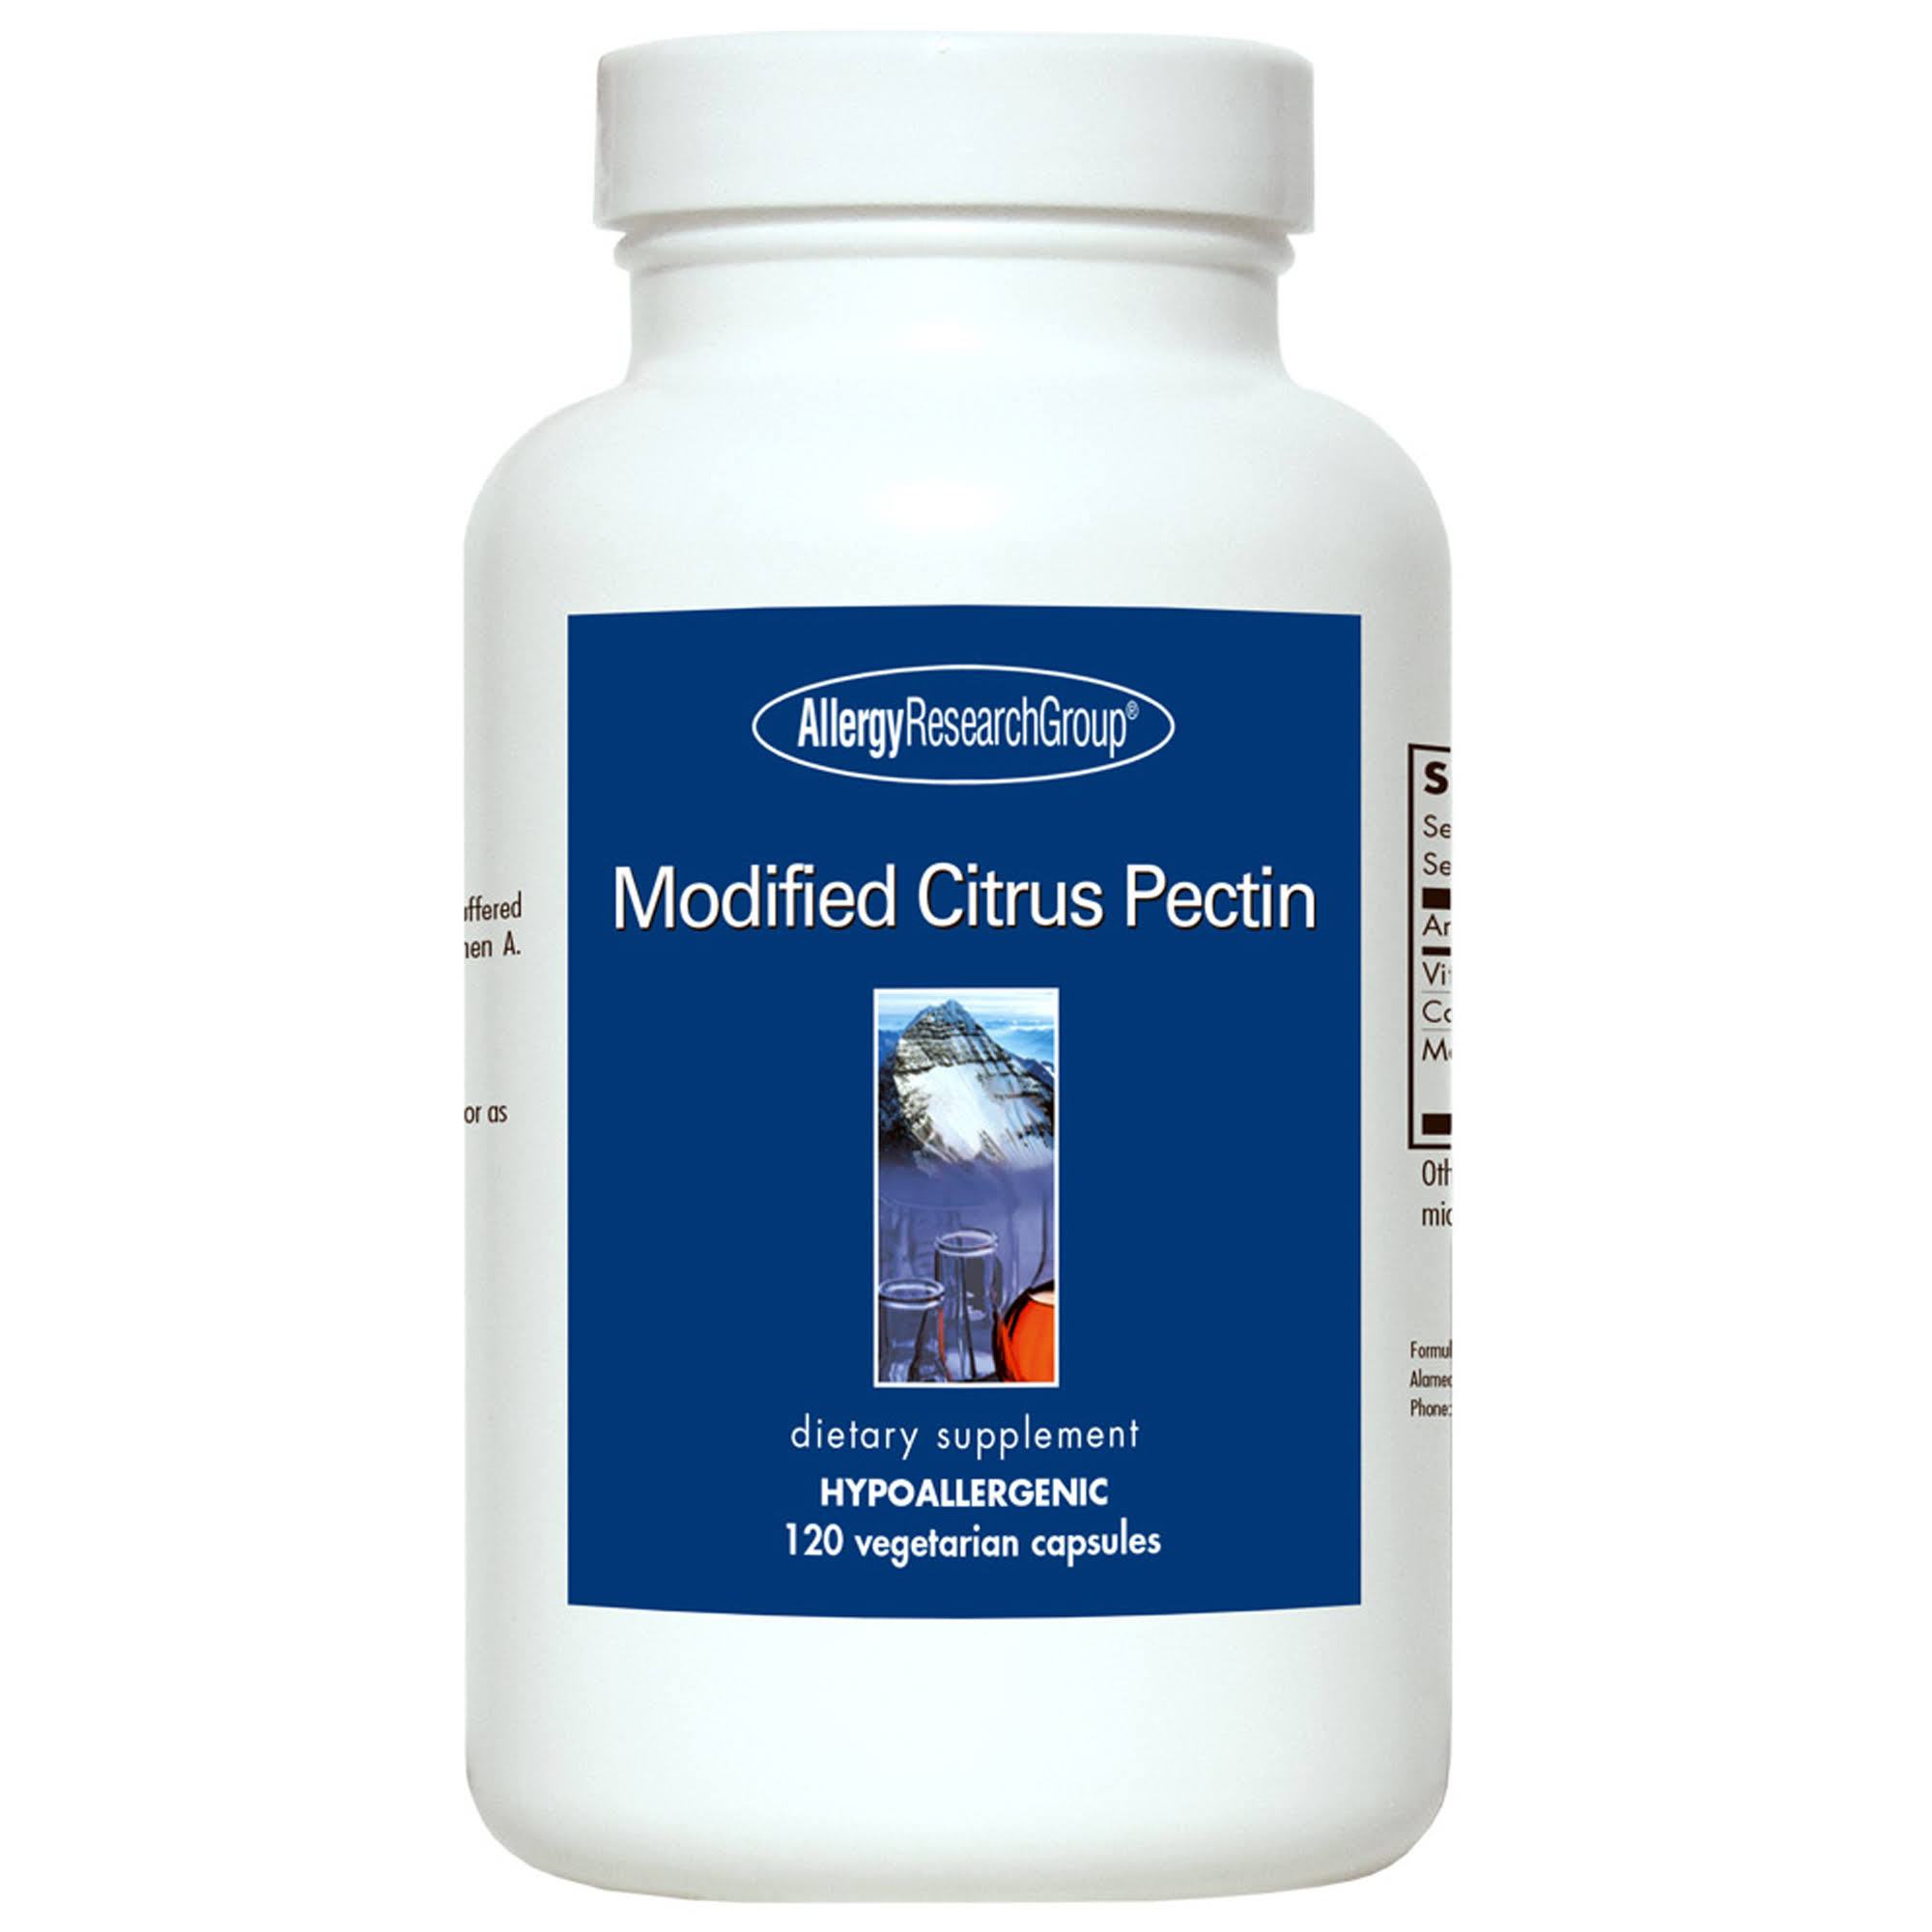 Allergy Research Group Modified Citrus Pectin Capsules - 120ct